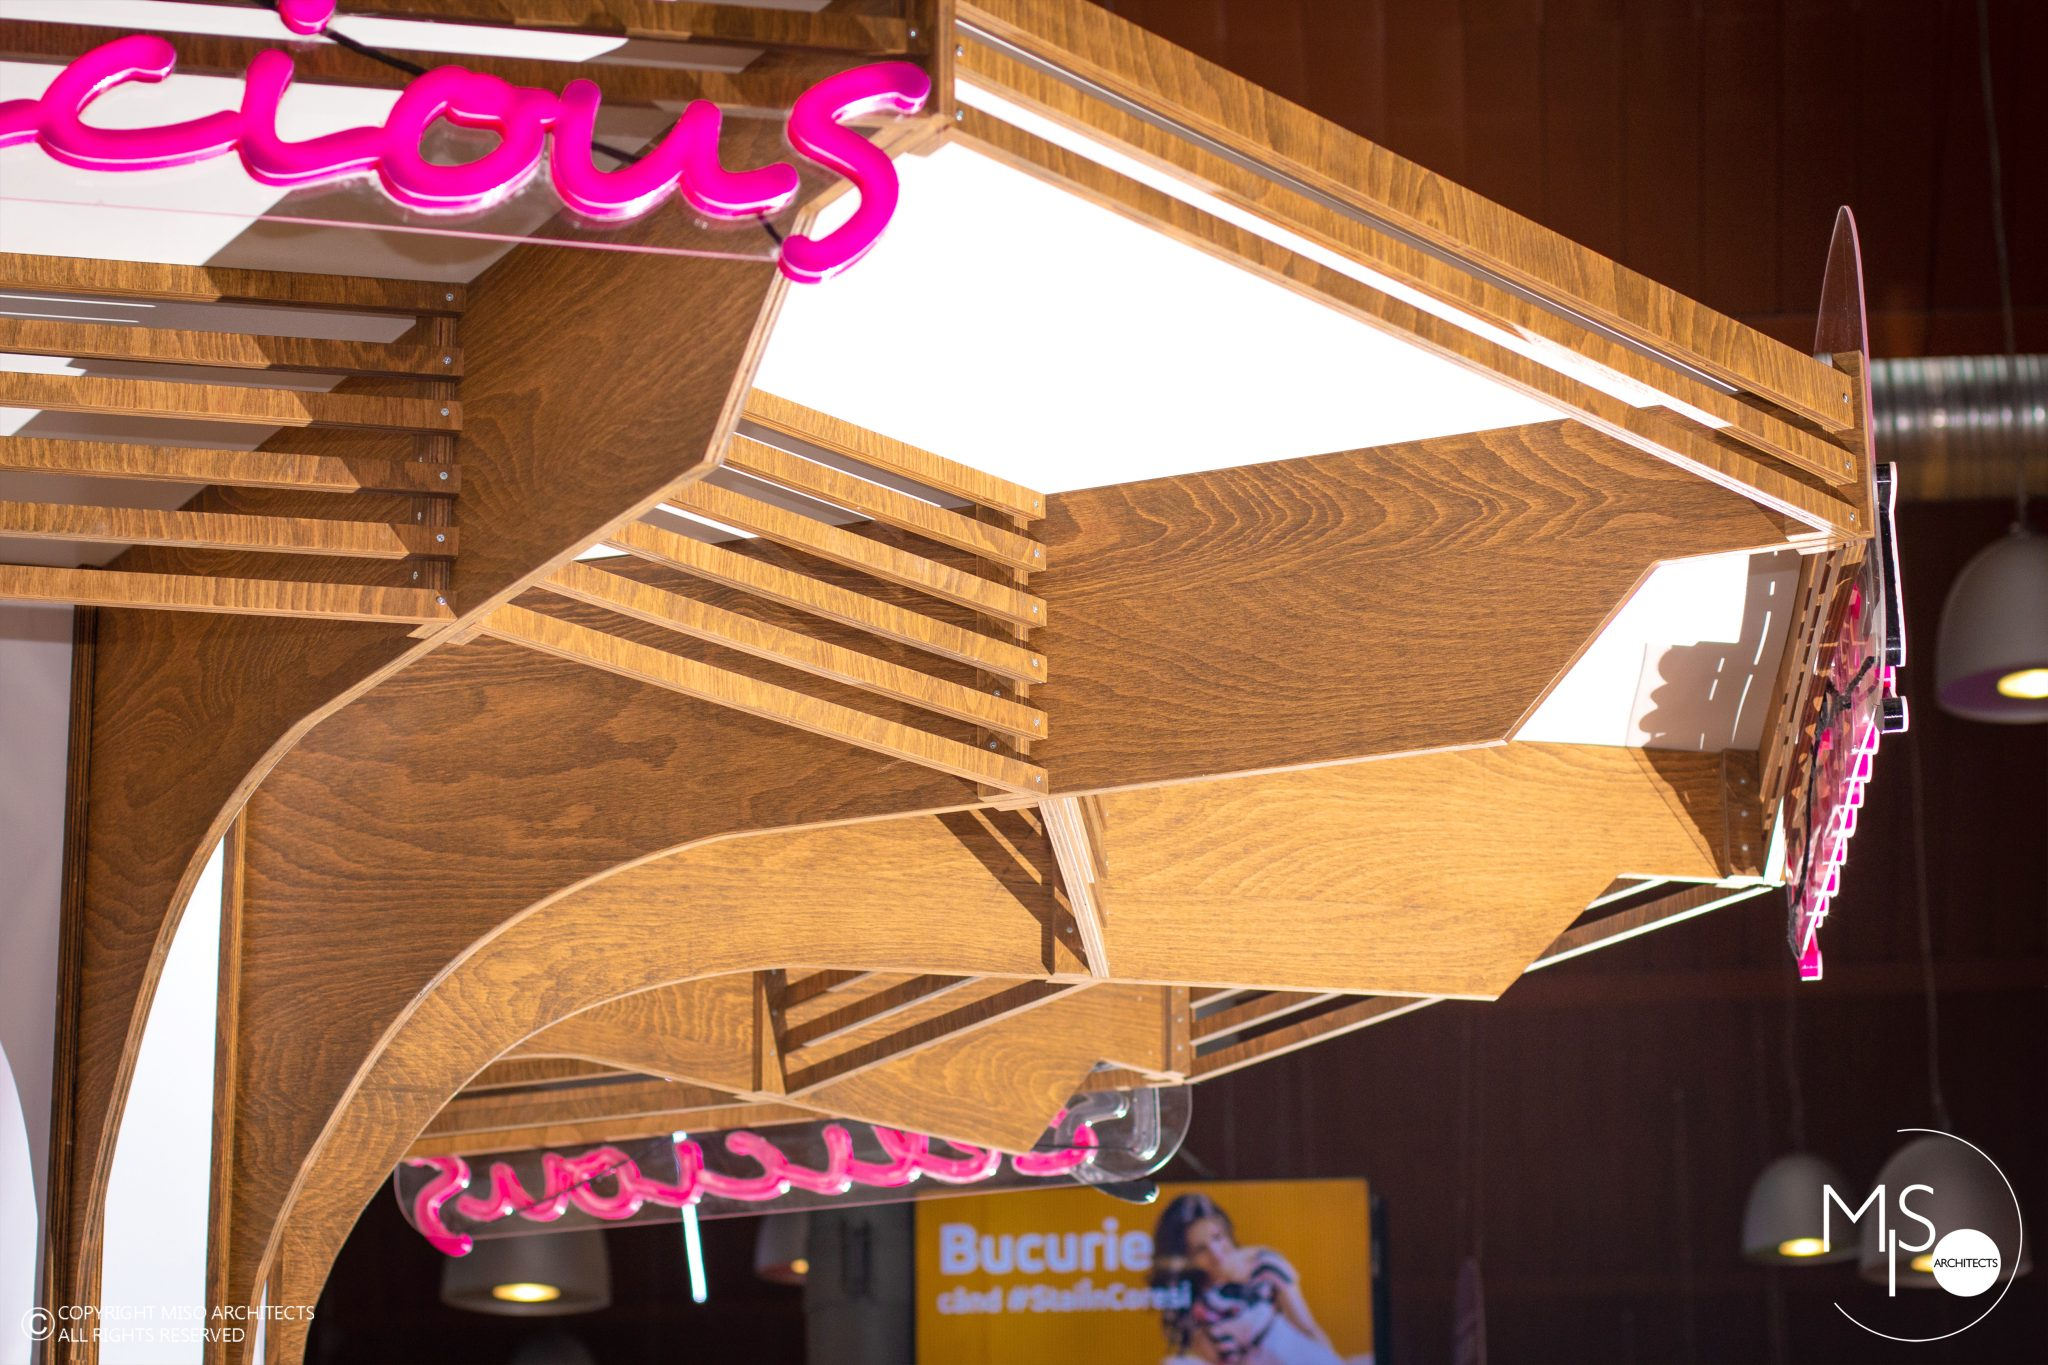 Miso-Architects_Stand-Bdelicious-Coresi-8-scaled.jpg